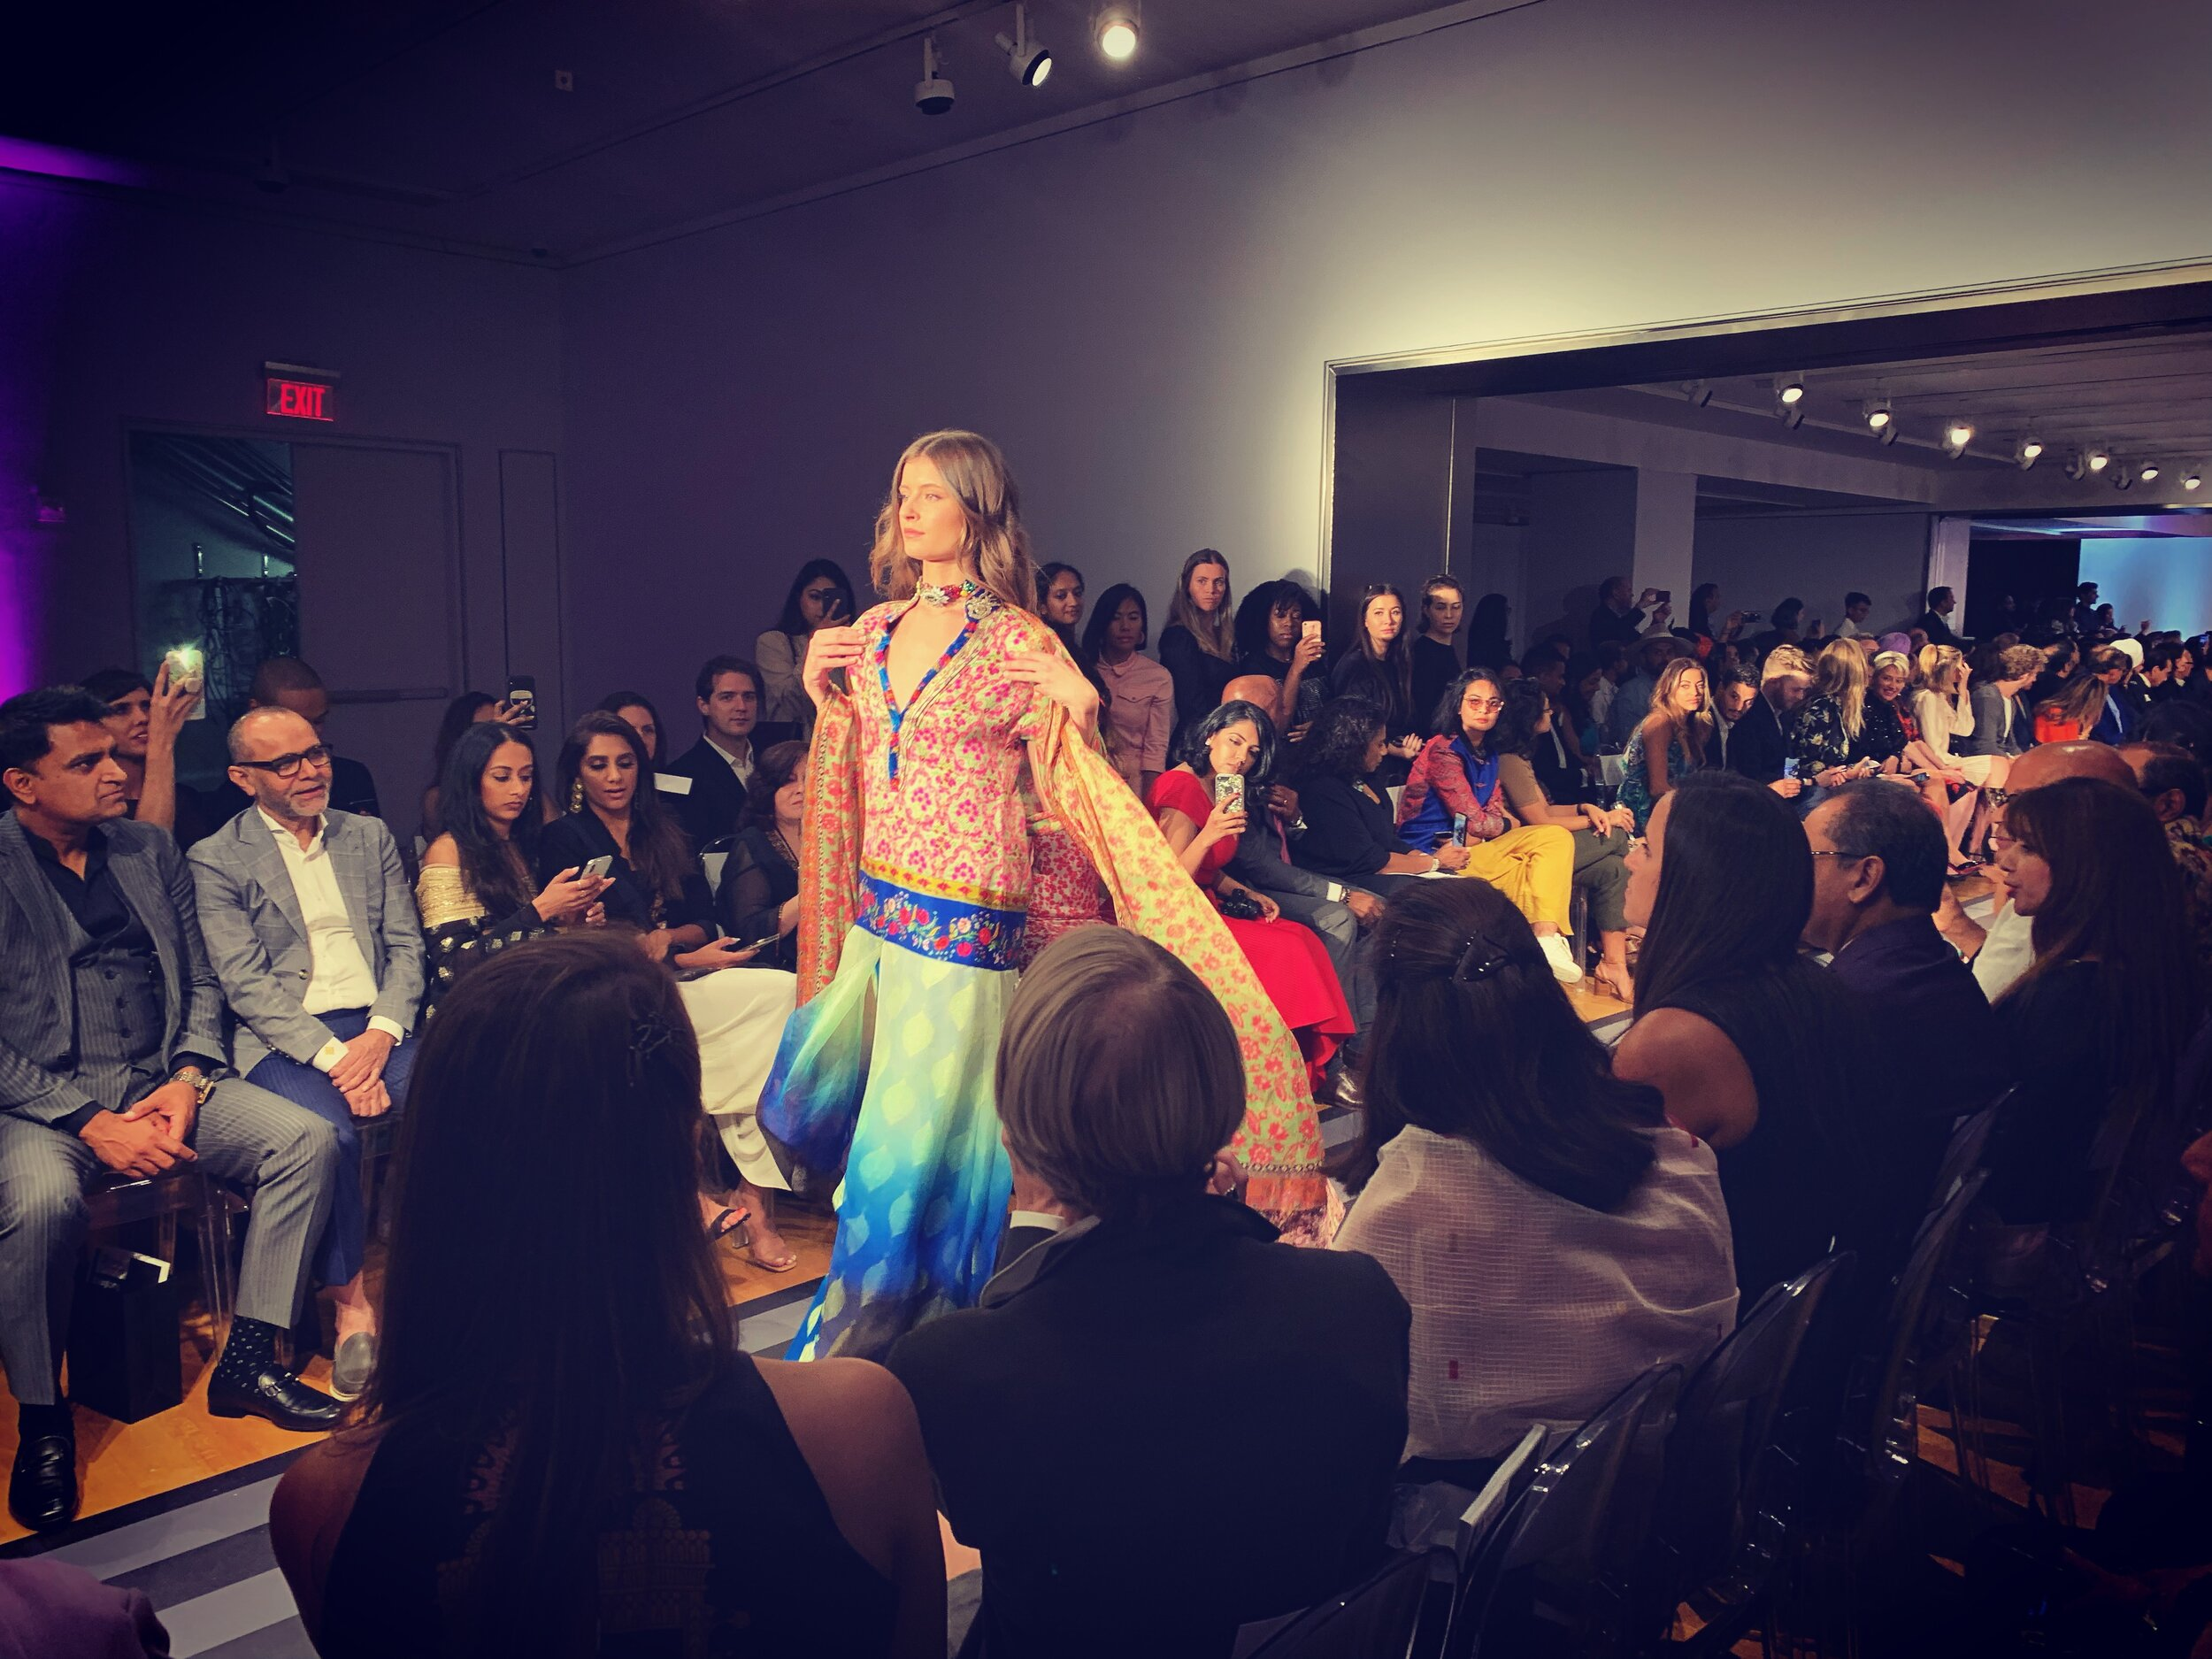 APF participated in Fashion Parade, a runway show at Christie's Auction House in New York promoting the work of Pakistani and Indian fashion designers.